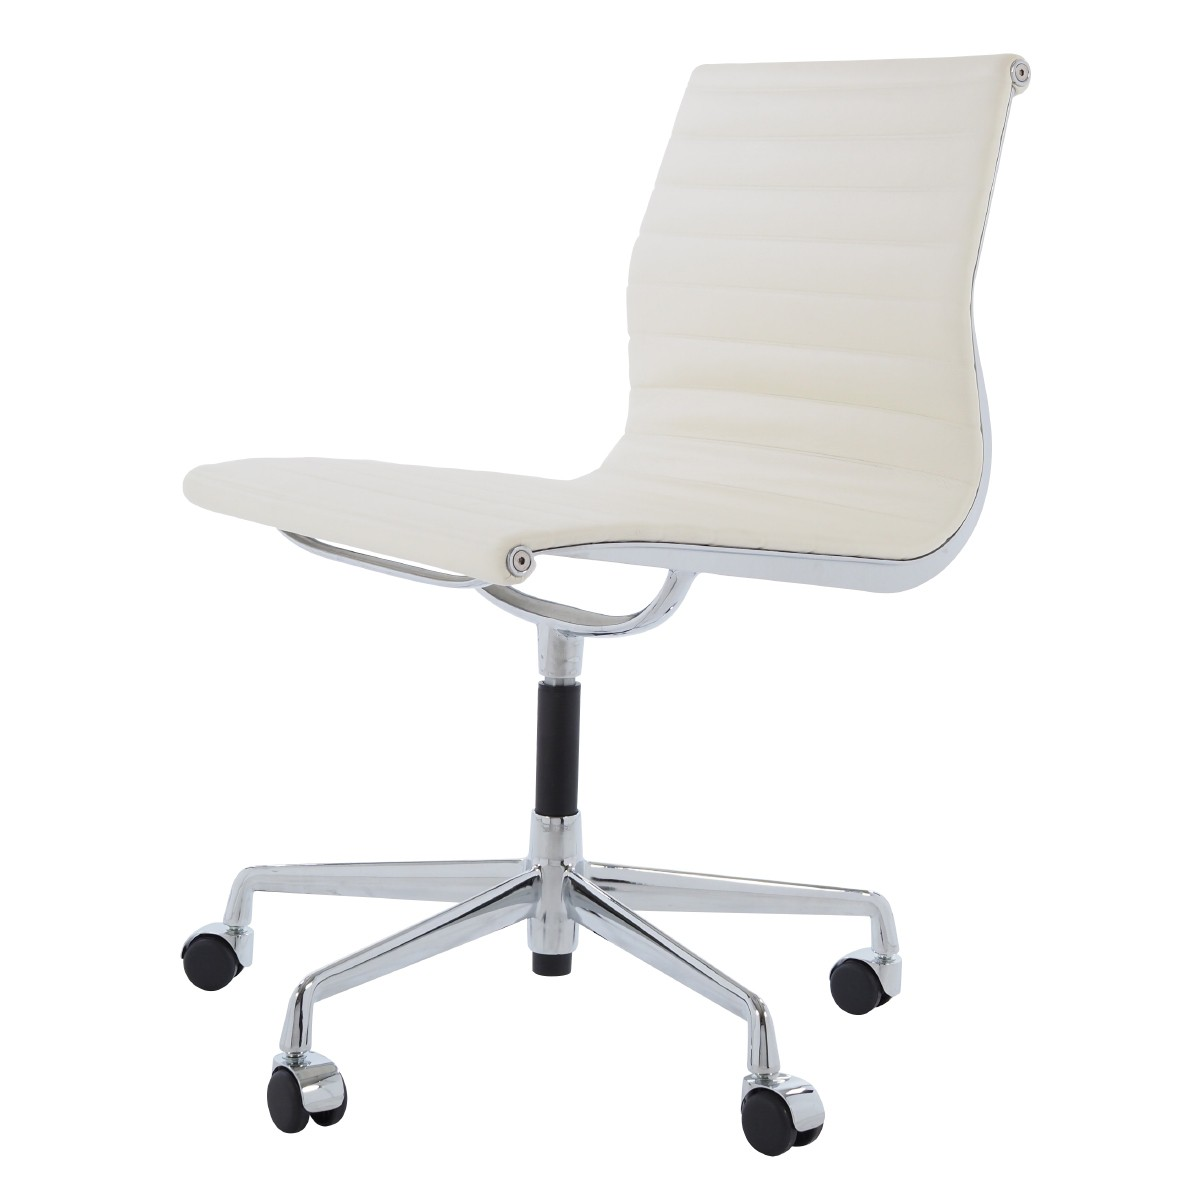 Design Bureaustoel Wit.Charles Eames Conference Chair Ea105 Leather On Castors No Arms